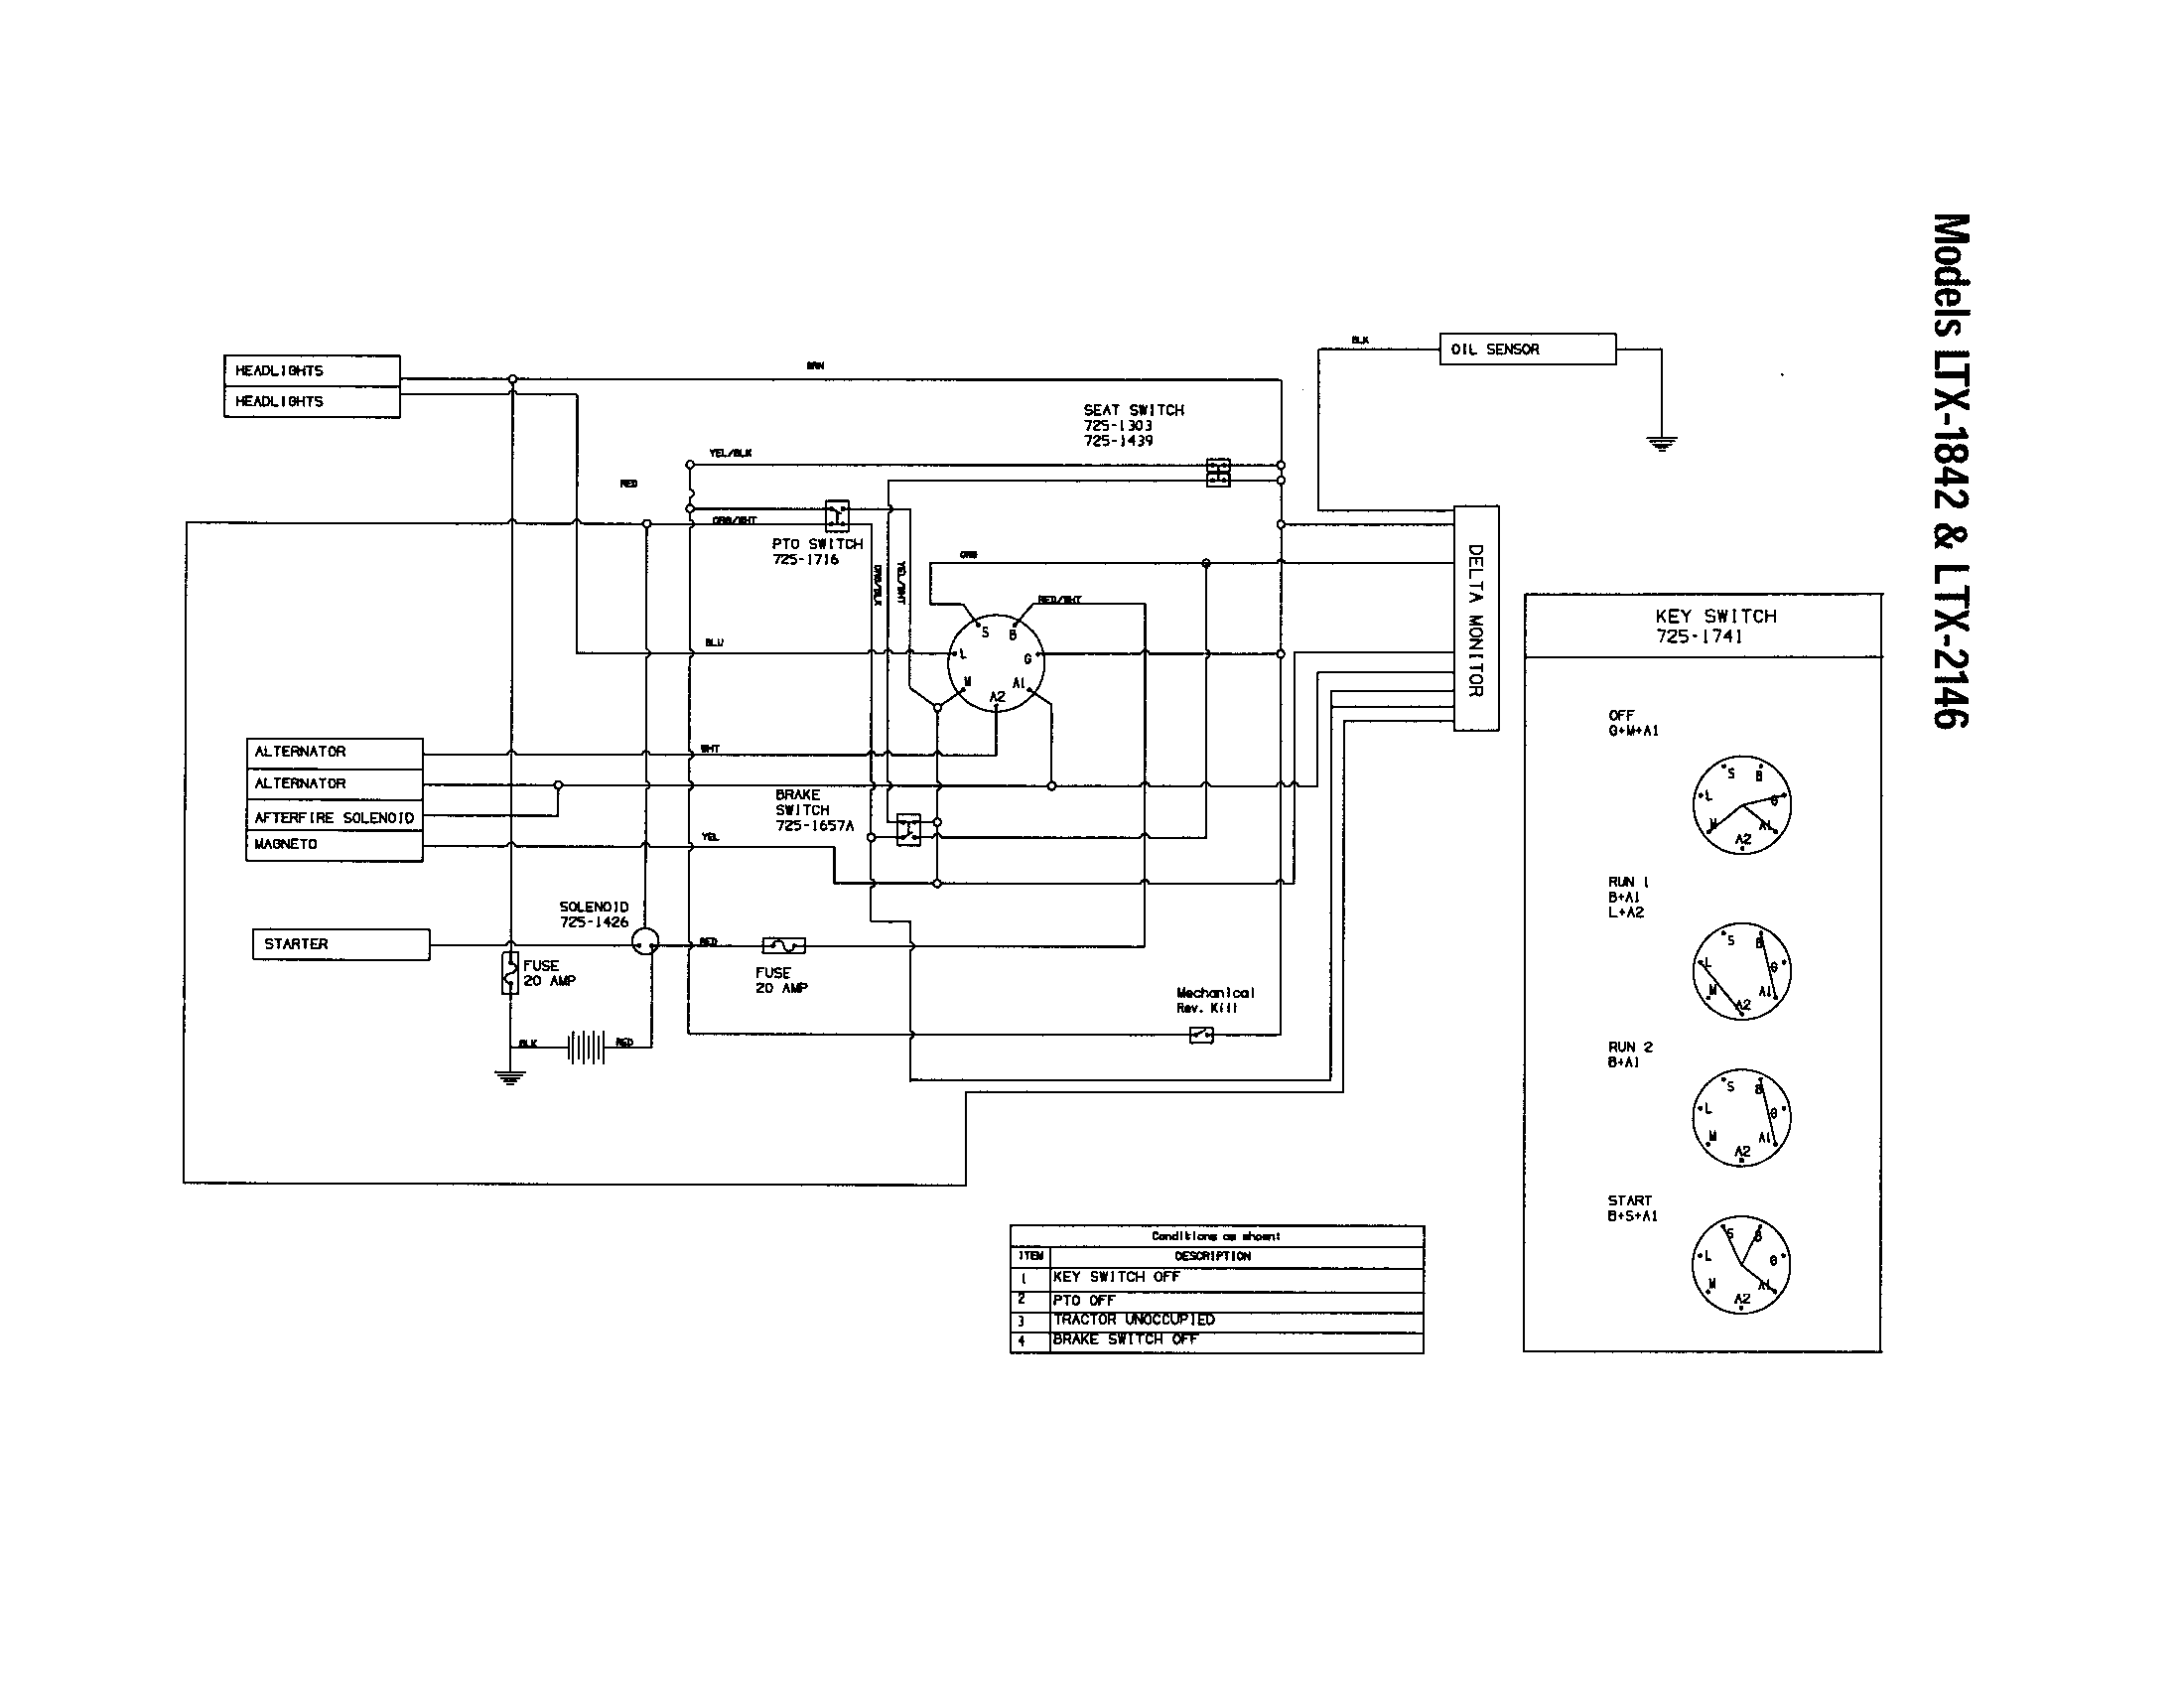 P0401171 00010 wiring diagram for troy bilt super bronco wiring wiring diagrams 13av60kg011 wiring diagram at bayanpartner.co